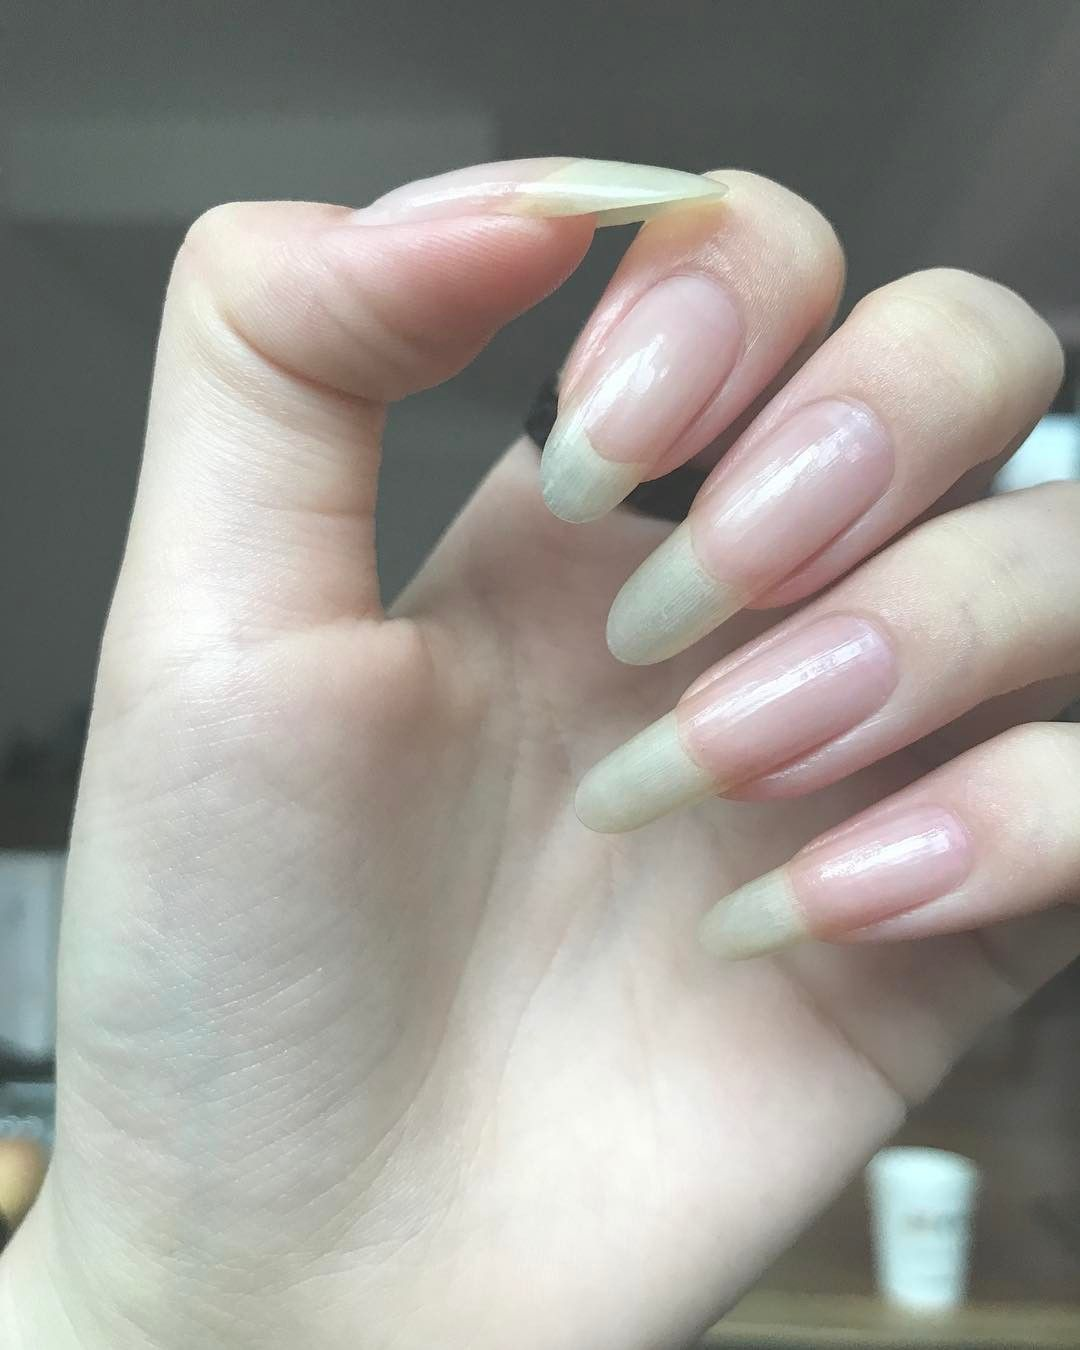 "48 Likes, 4 Comments - Berylfen (@beryl_fen) on Instagram: ""#nails ..."